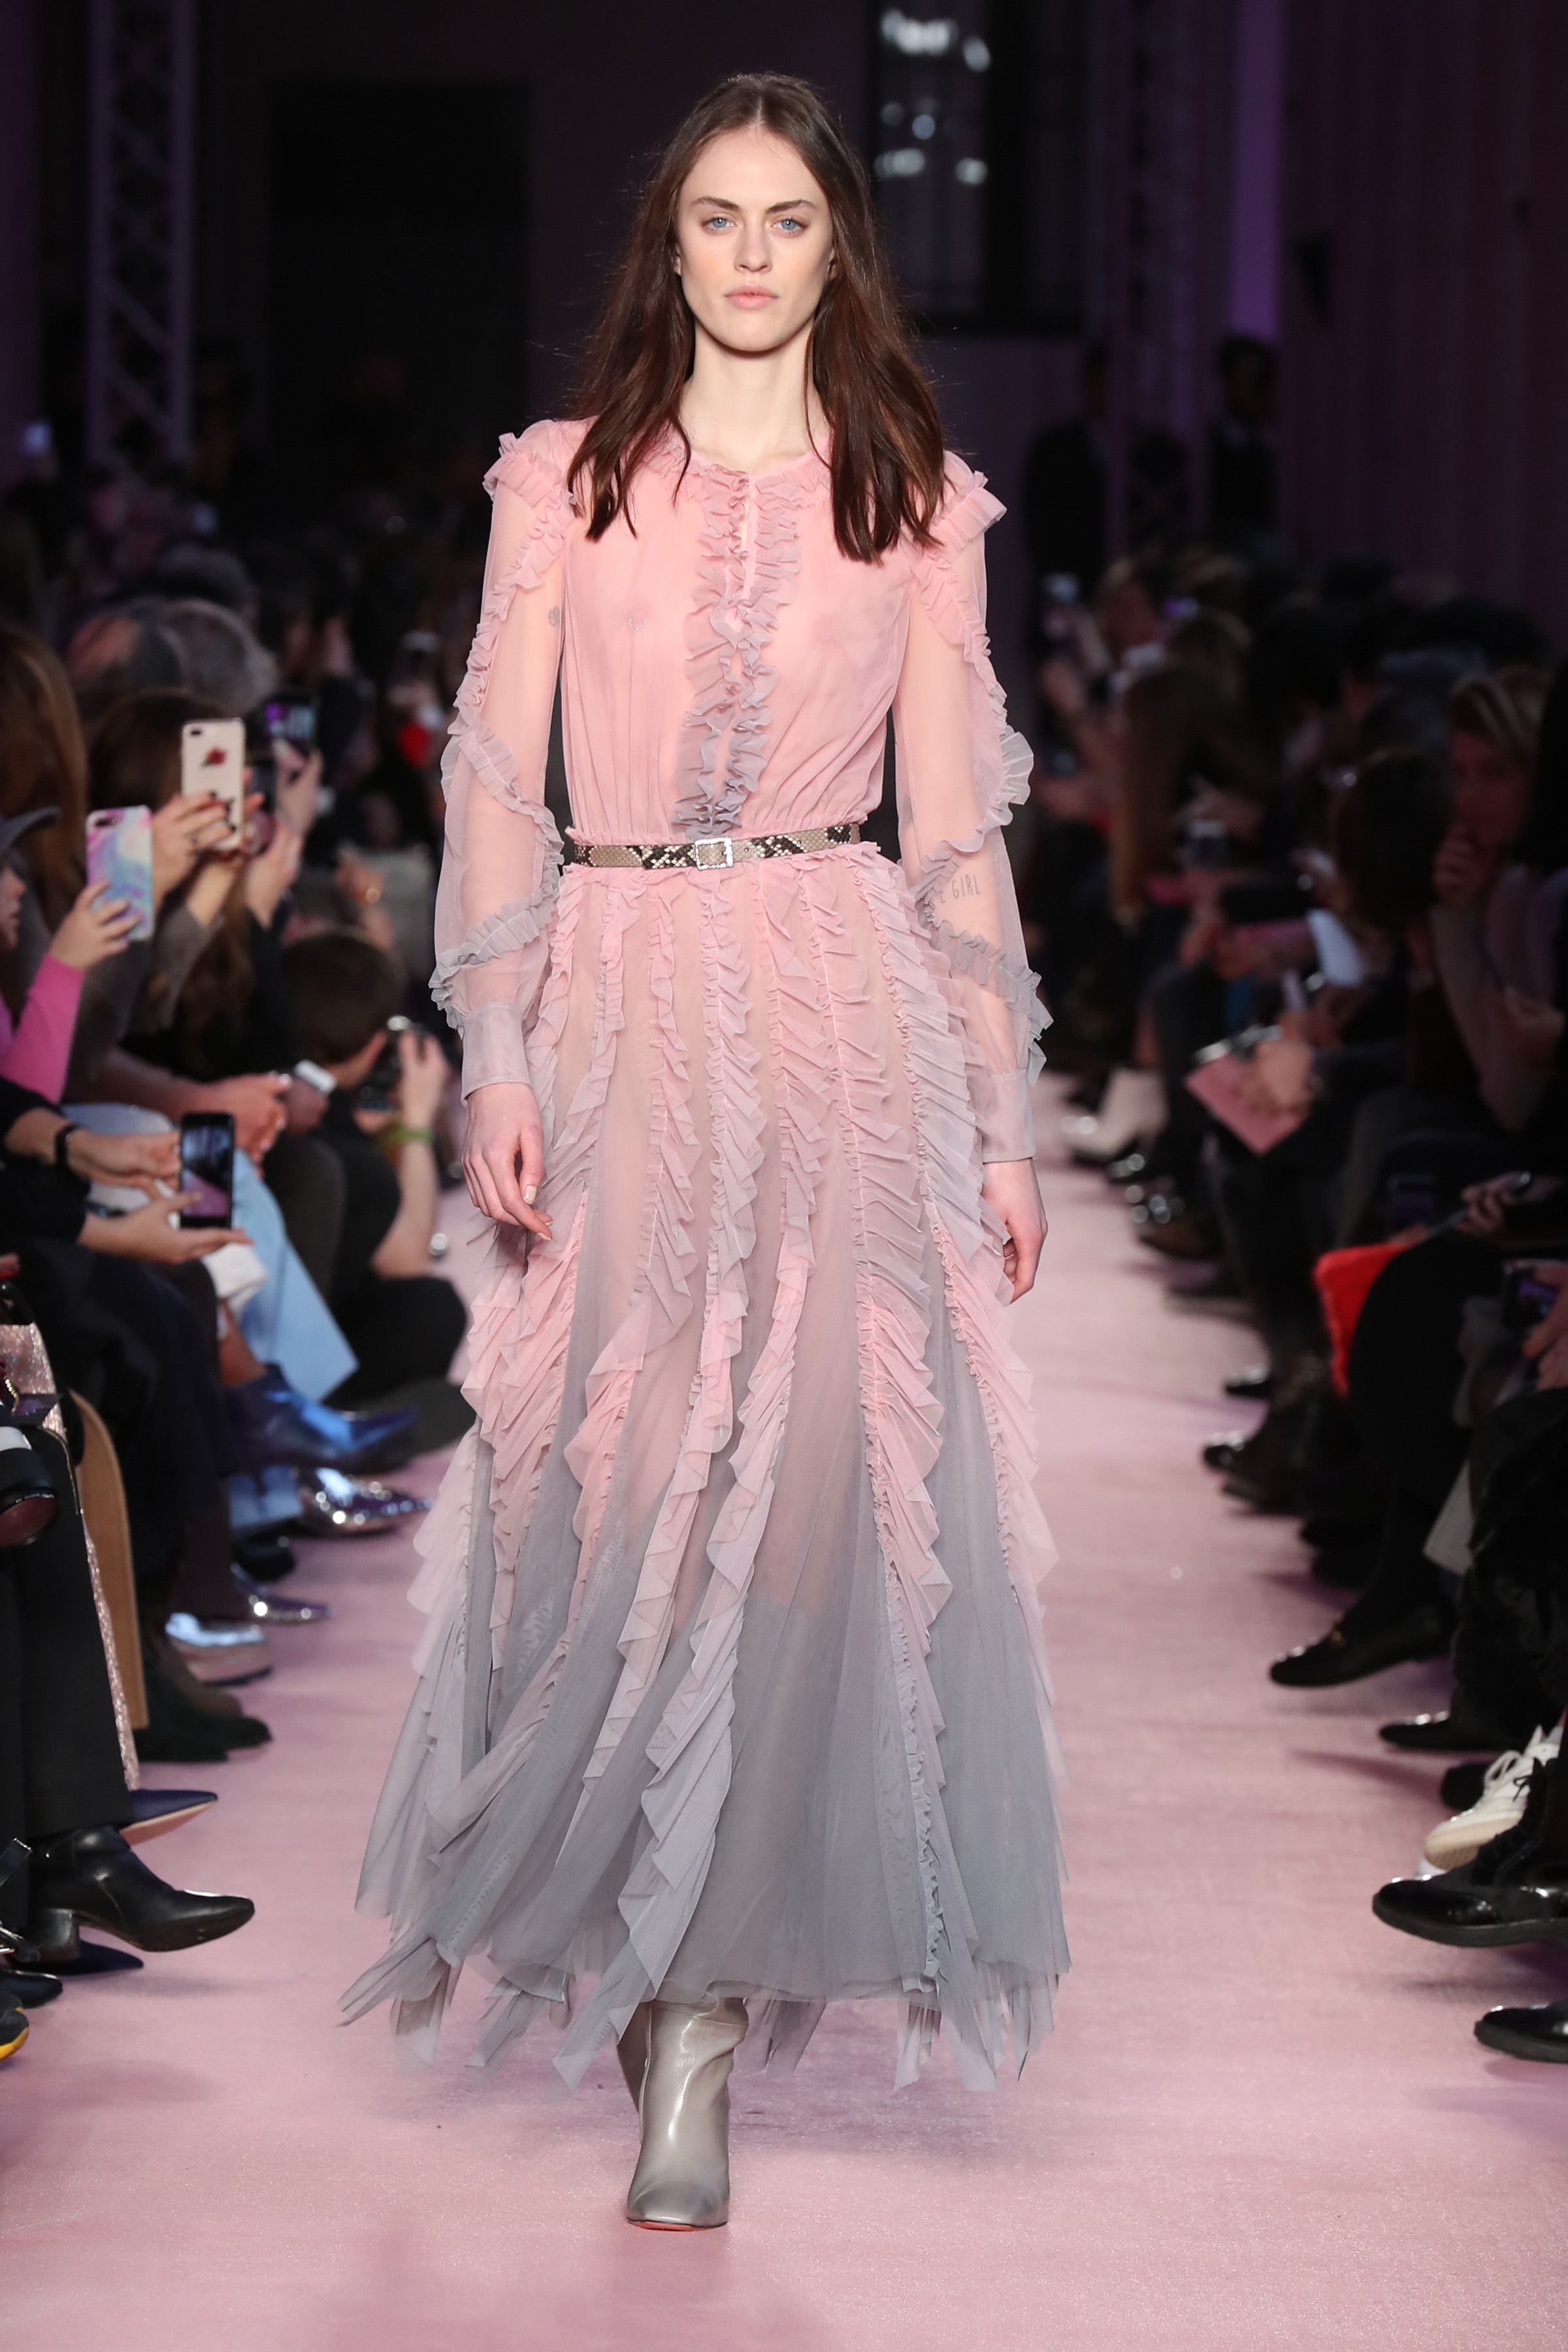 Milan/Italy - February 23 2018: A model walks the runway at the BLUMARINE show during Milan Fashion Week on February 23, 2018 in Milan, Italy. <P>  <B>Ref: SPL1662821  230218  </B><BR/> Picture by: Antonio Barros / Splash News<BR/> </P><P> <B>Splash News and Pictures</B><BR/> Los Angeles:310-821-2666<BR/> New York:212-619-2666<BR/> London:870-934-2666<BR/> <span id=